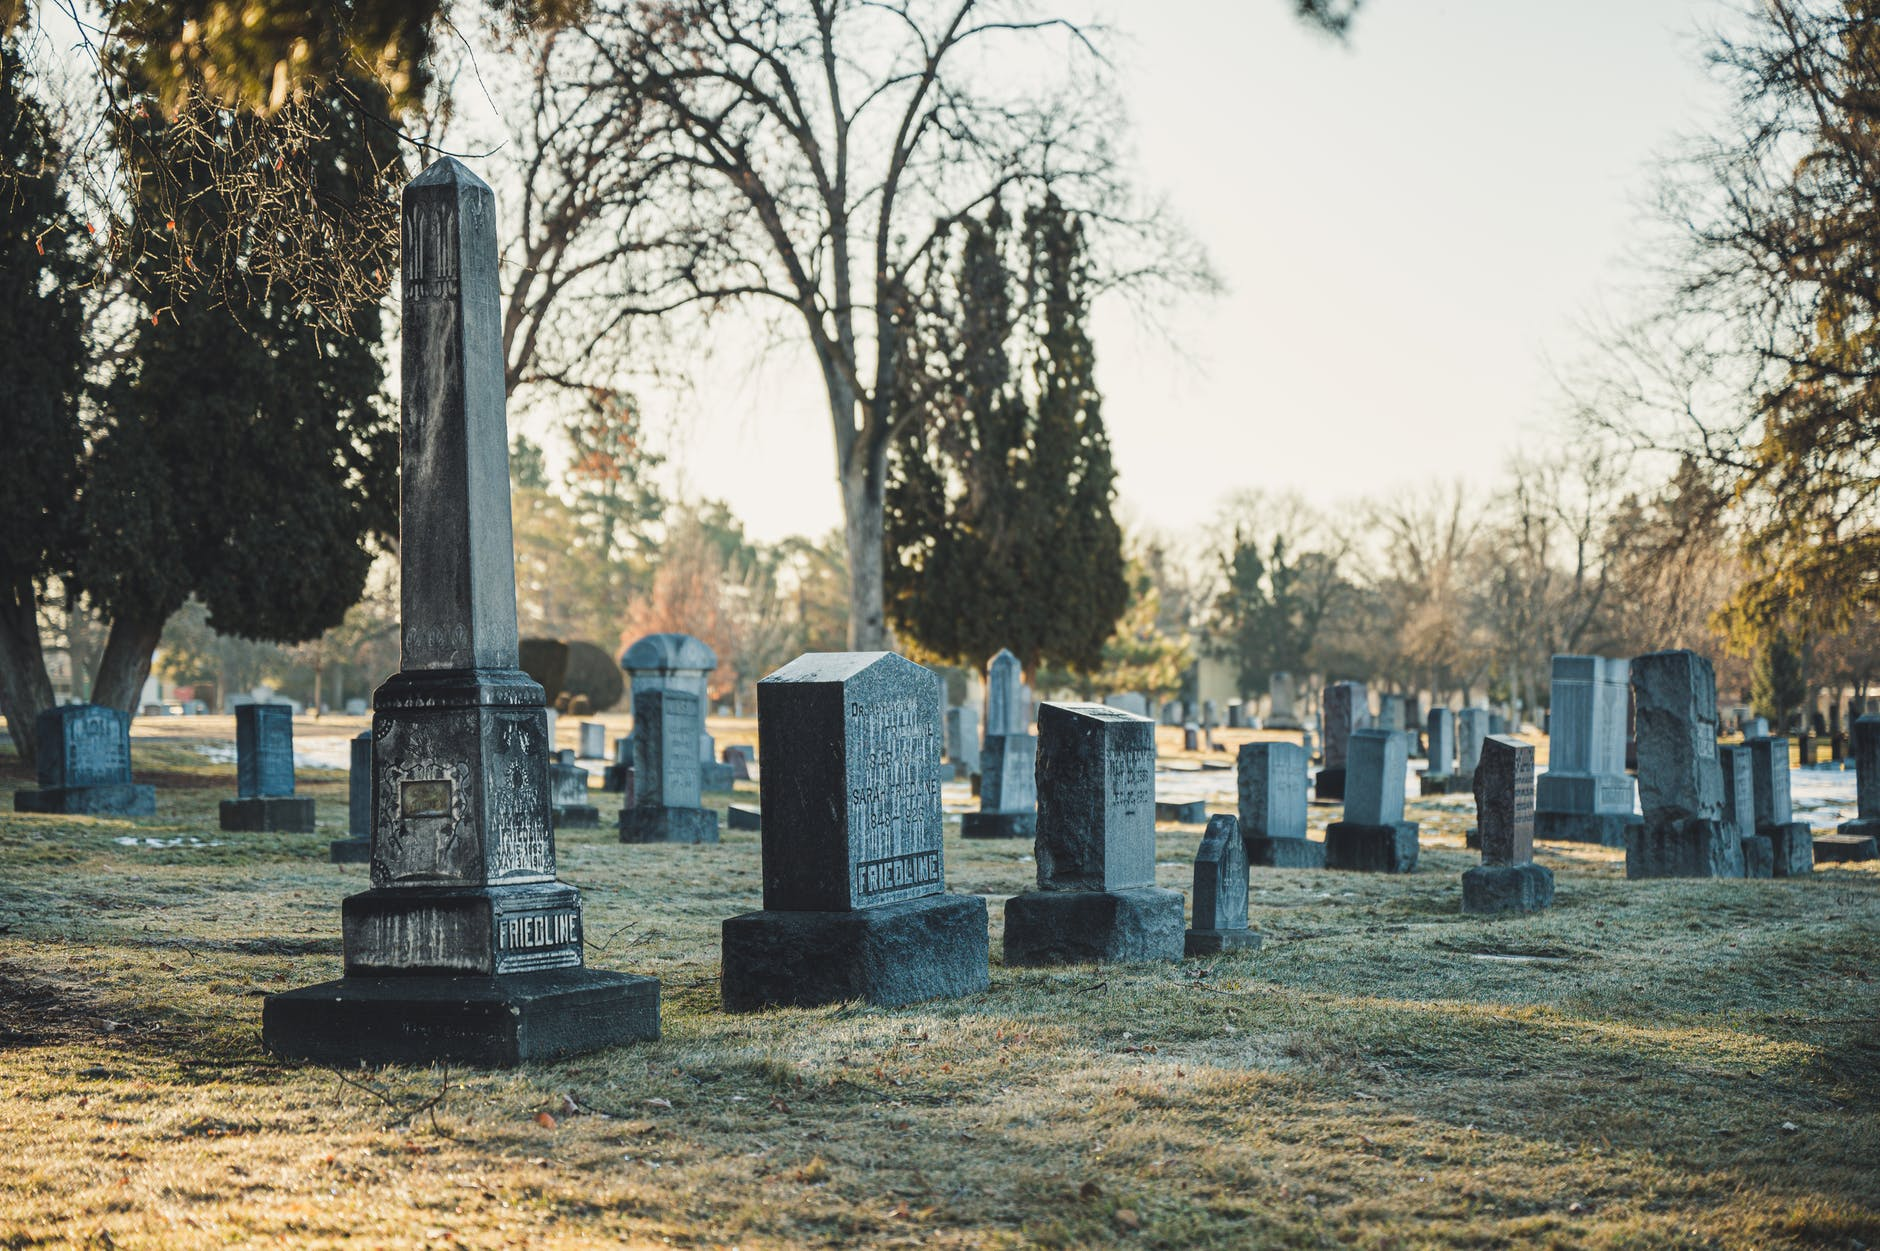 photo of tombstones on grass field